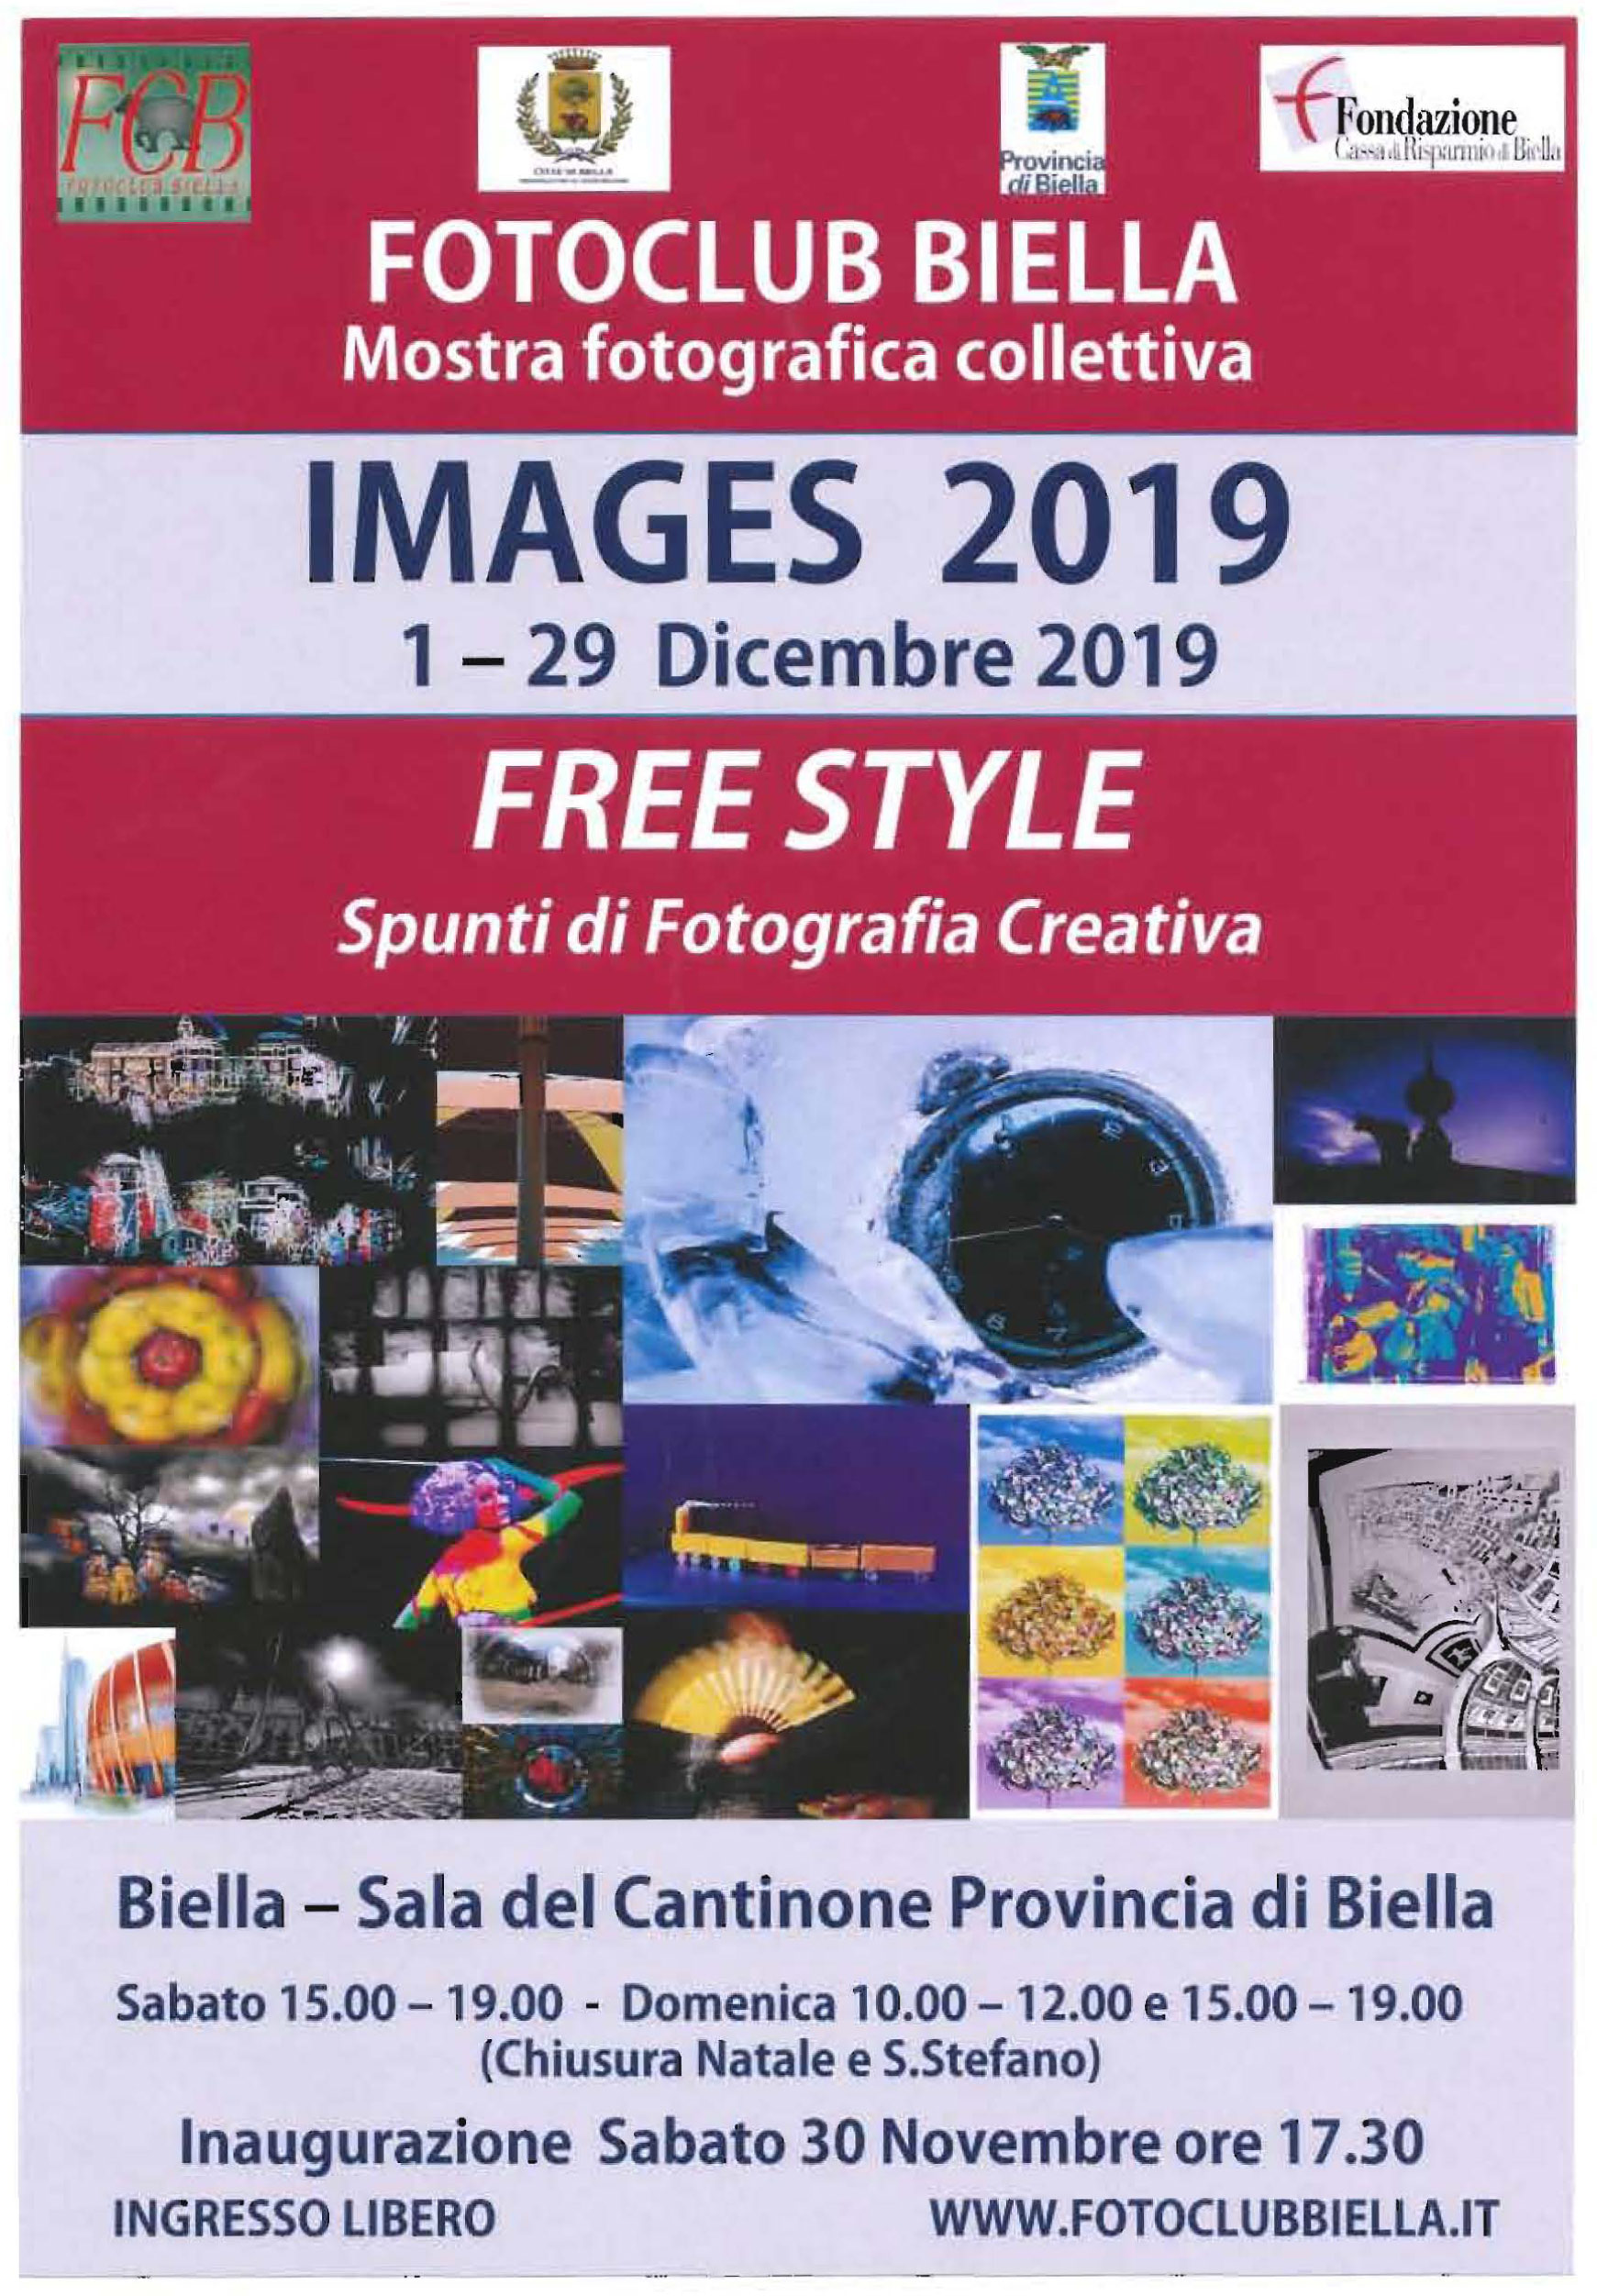 Images 2019